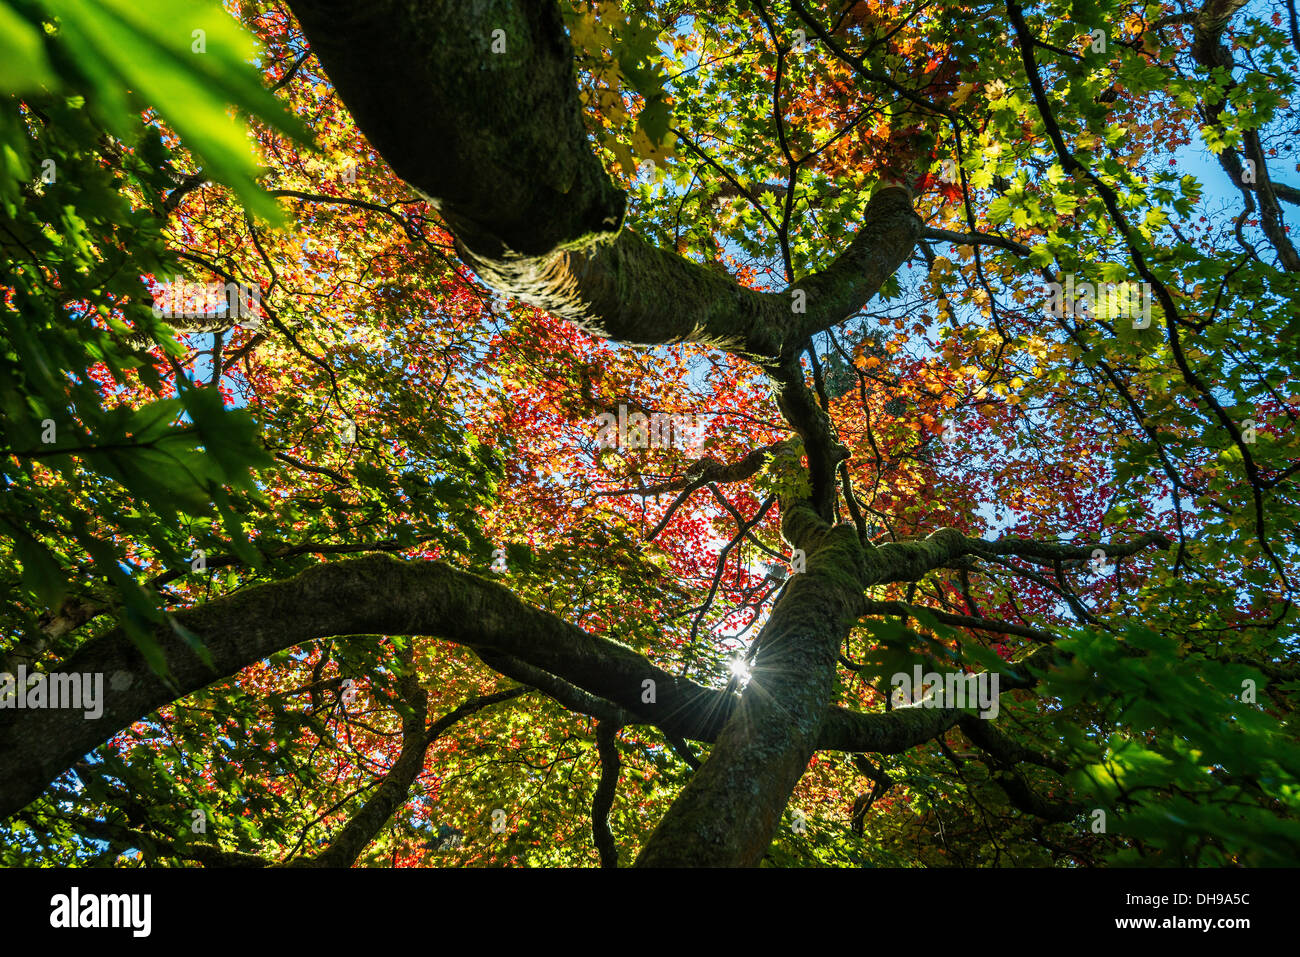 ACER TREE IN AUTUMN COLOUR IN WESTONBIRT ARBORETUM GLOUCESTERSHIRE ENGLAND UK LOOKING UP THROUGH BRANCHES - Stock Image